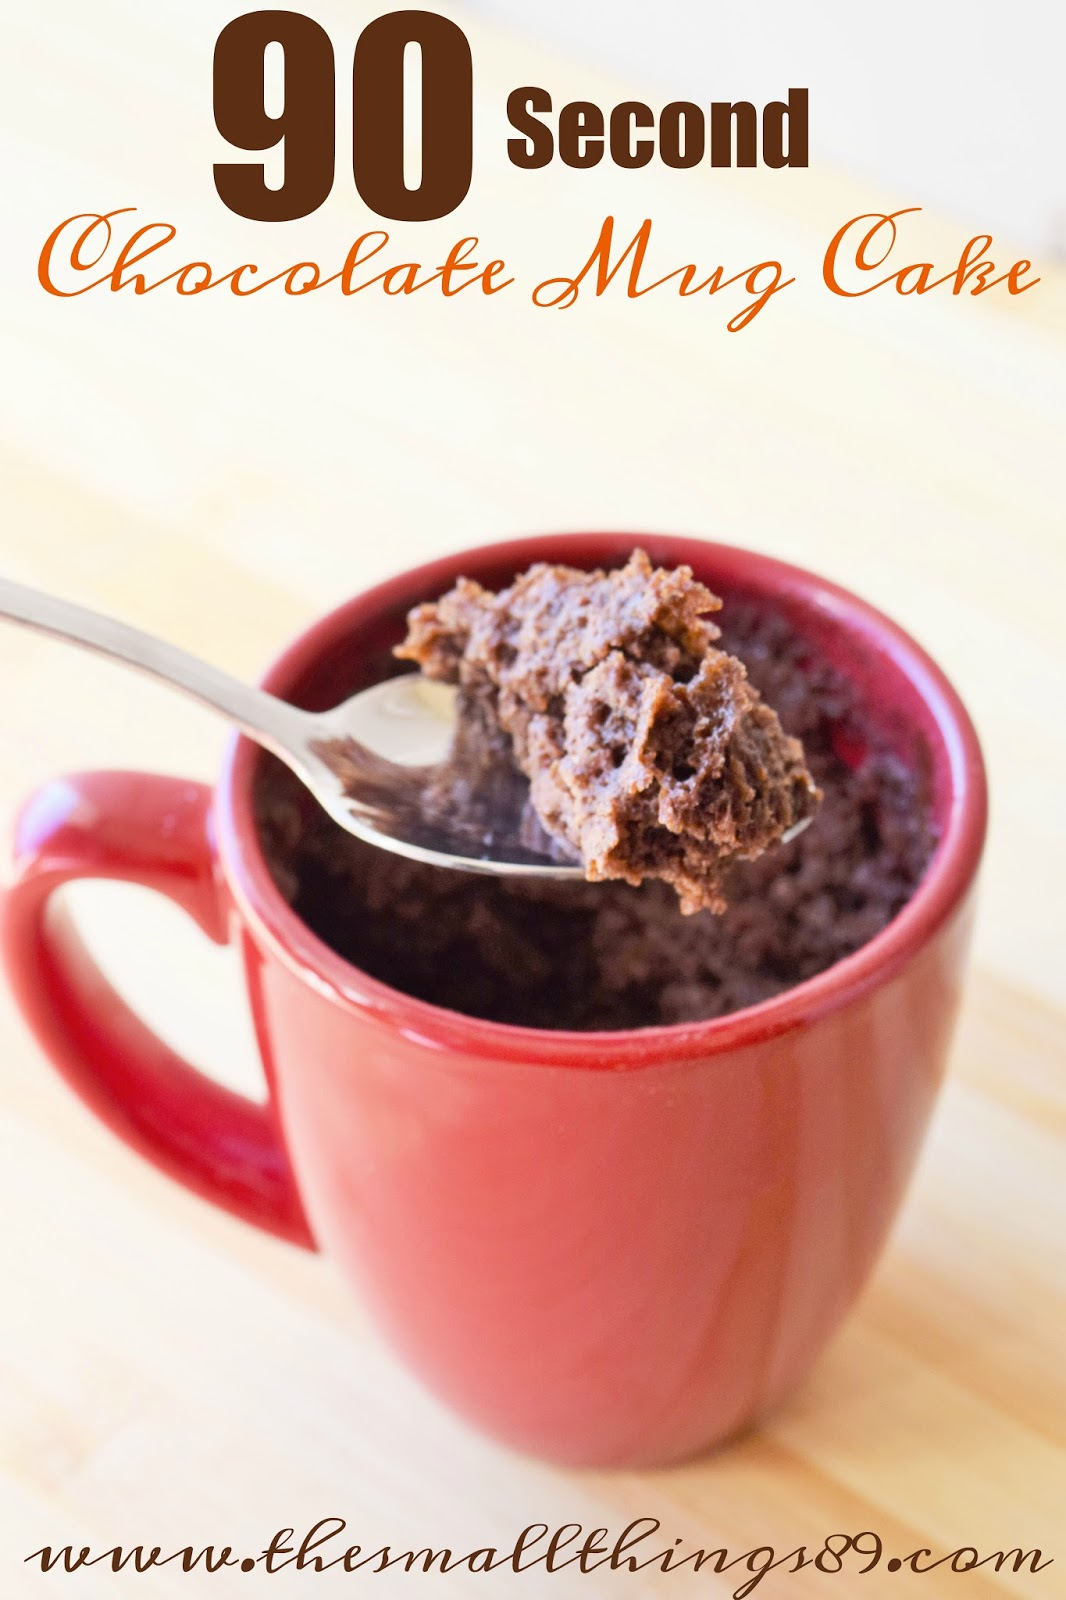 90 Second Chocolate Mug Cake!